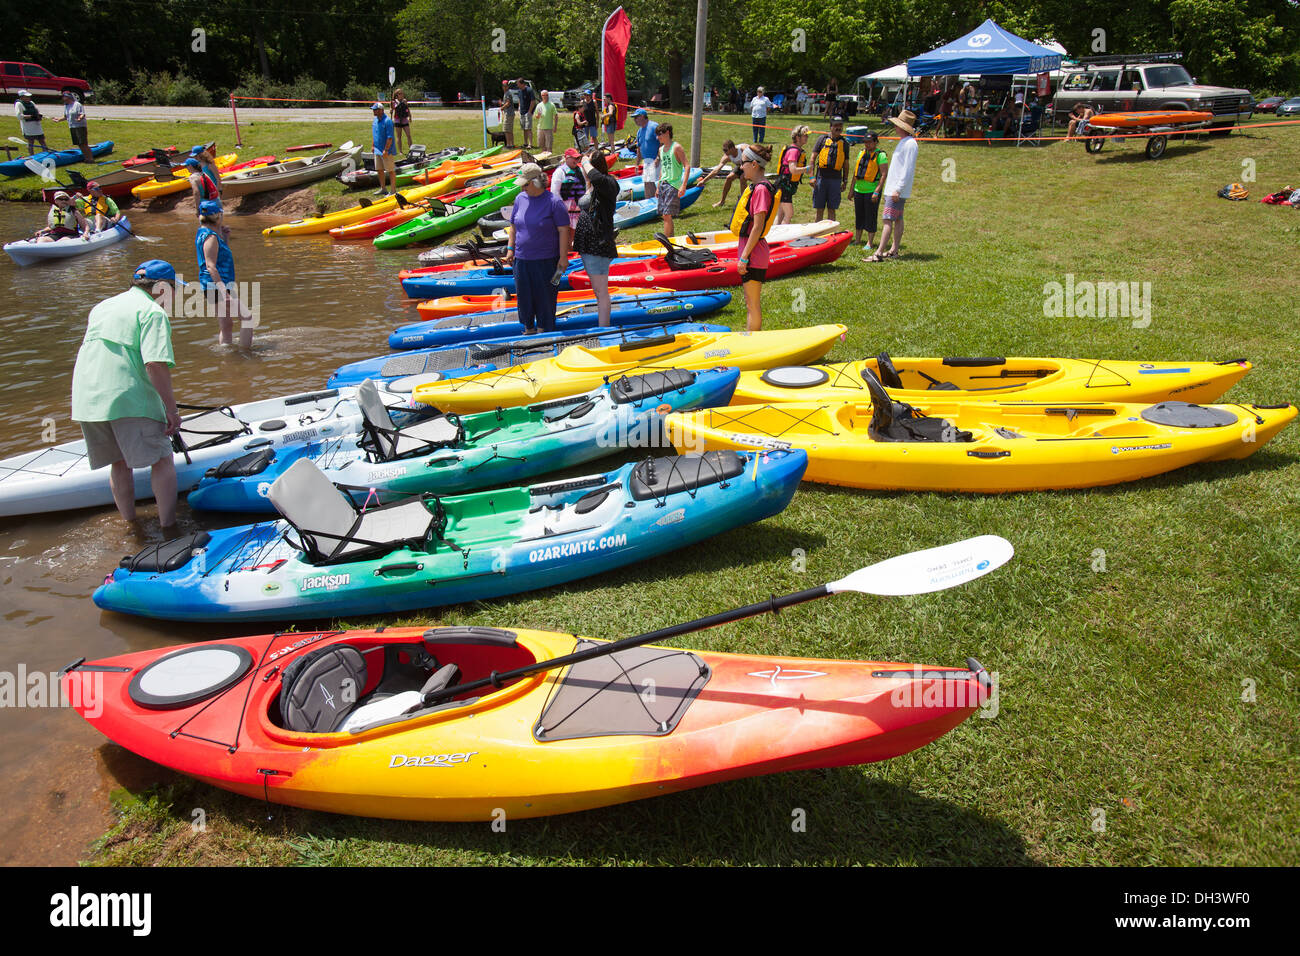 People attending a public kayaking event on a lake in Bella Vista, Arkansas, USA. Stock Photo